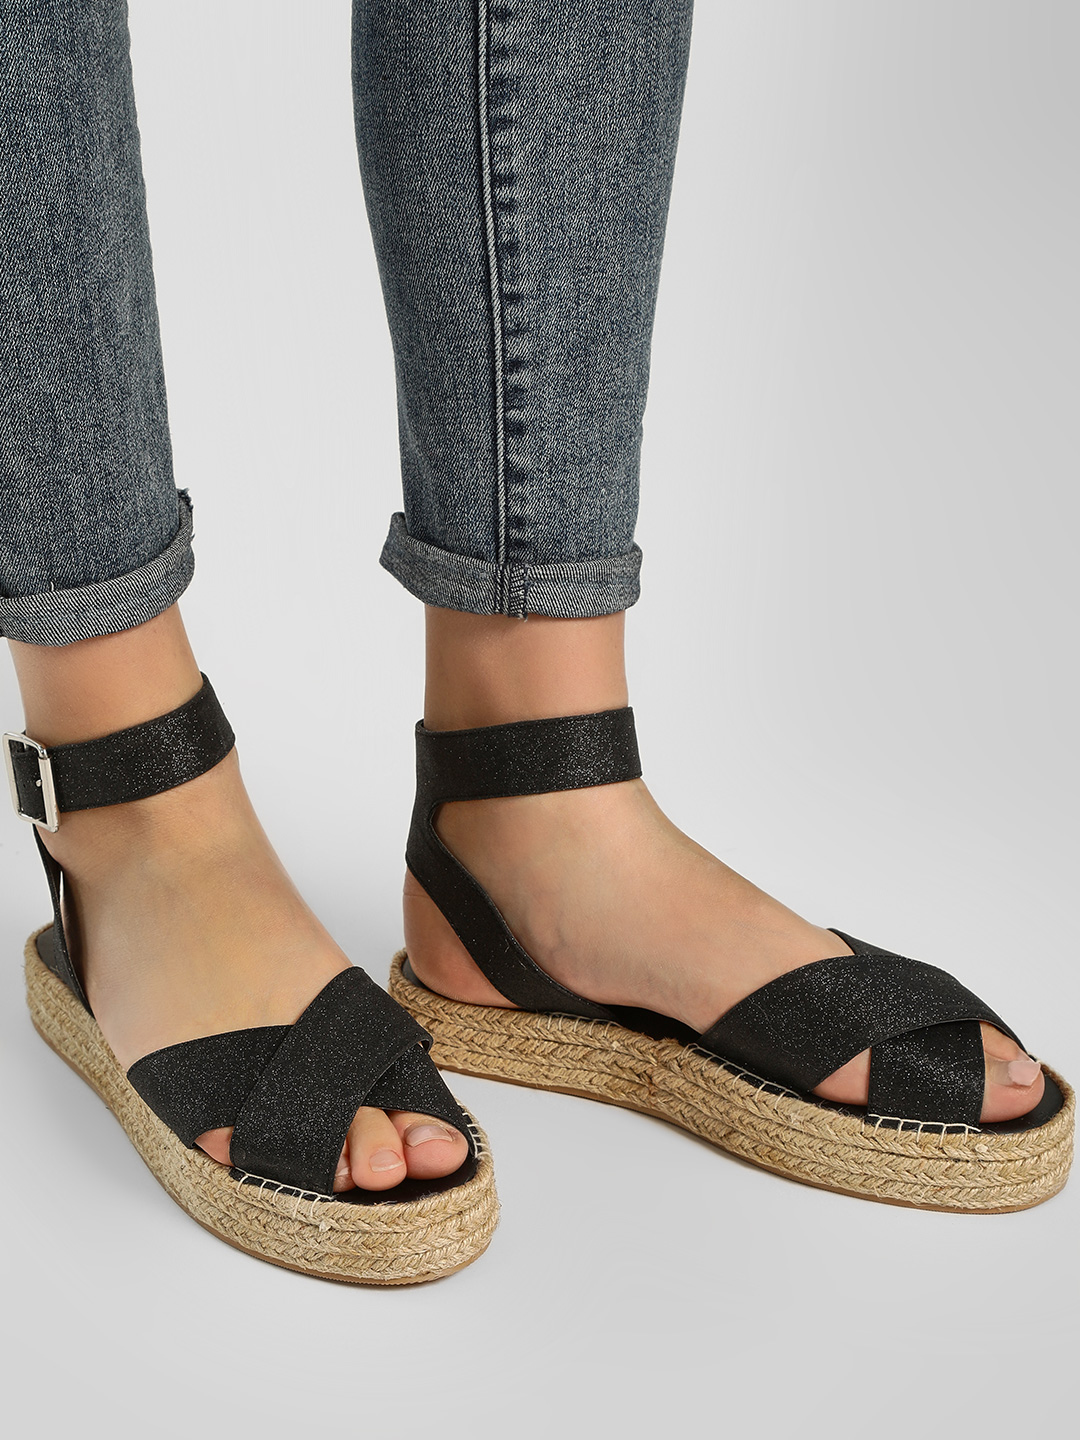 KOOVS Black Ankle Strap Flat Sandals 1